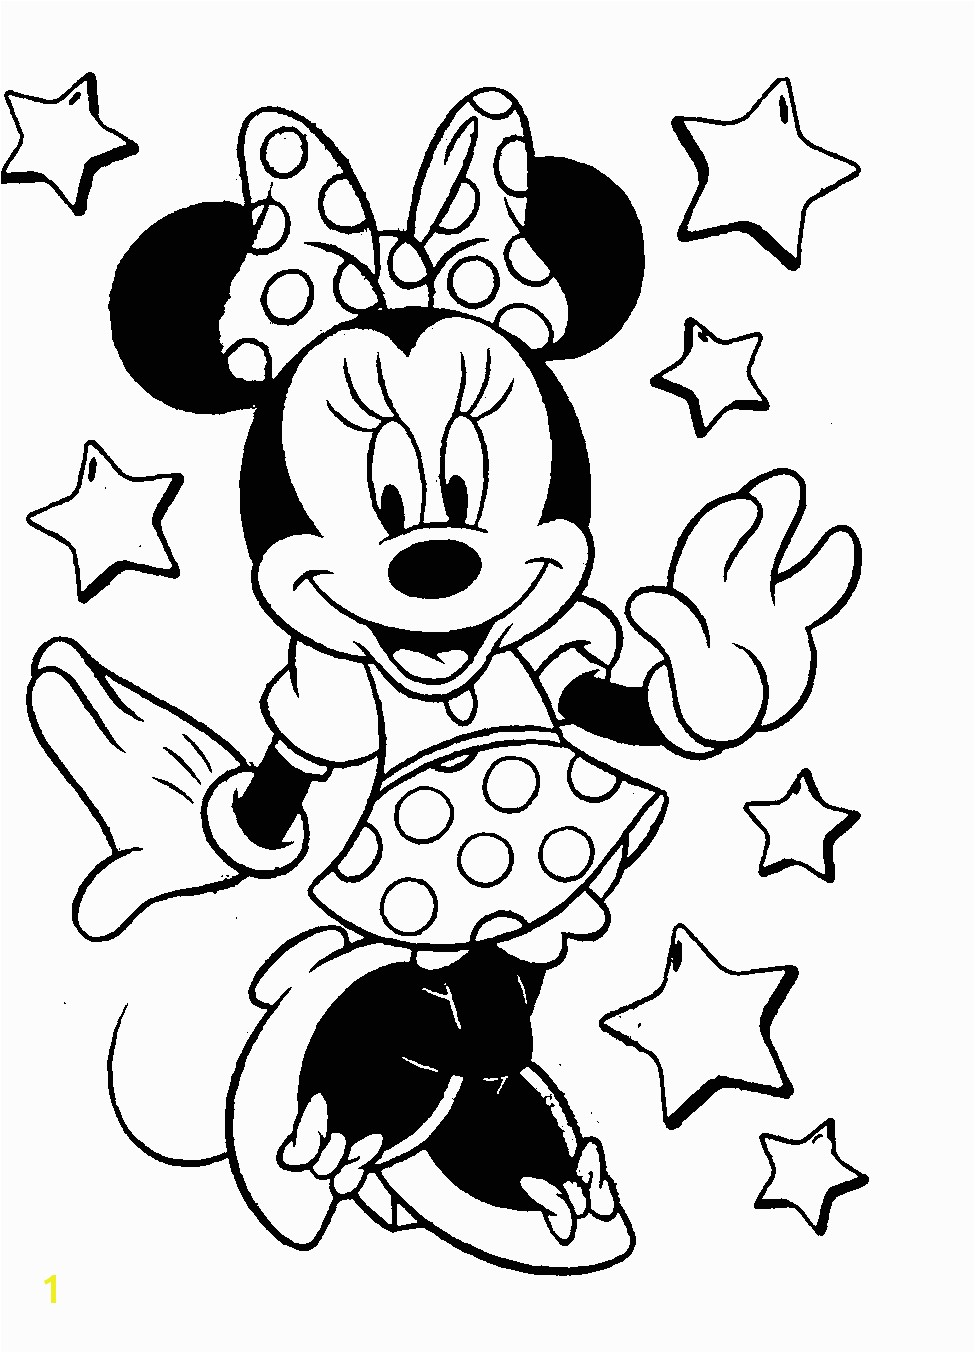 minnie mouse coloring pages 13y free disney coloring pages all in one place much faster than google imaging line drawings for each one